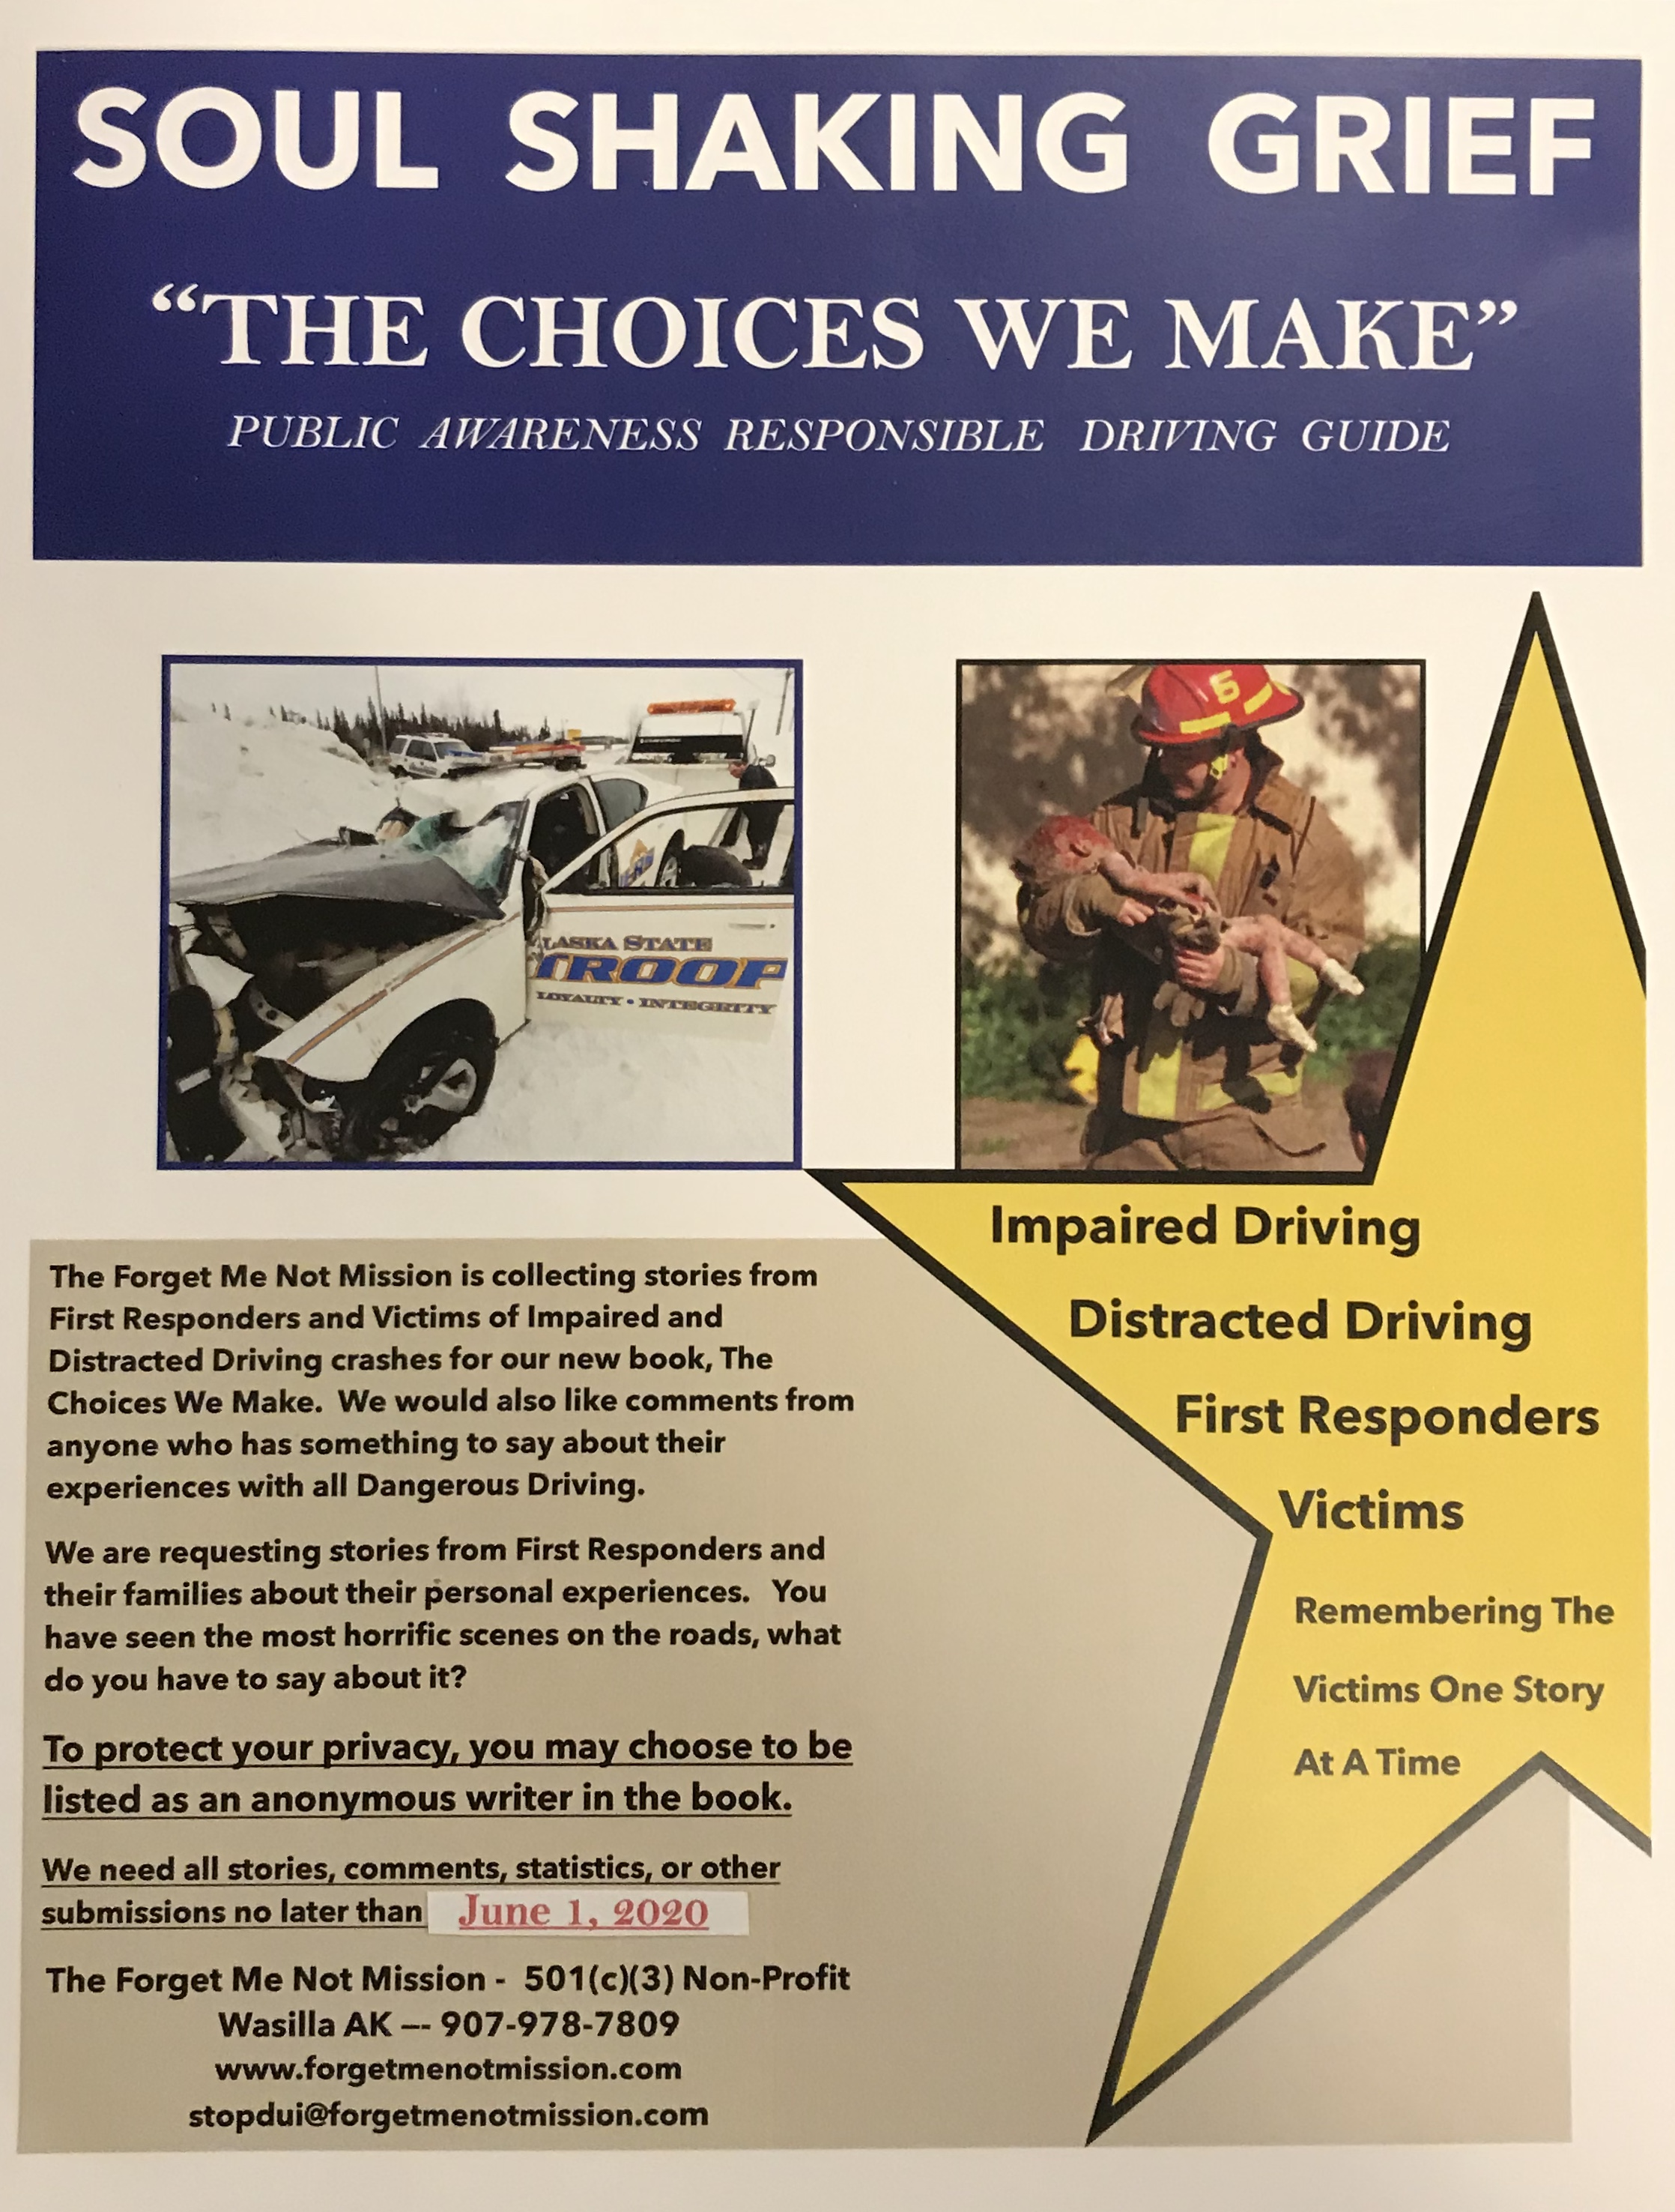 Soul Shaking Grief The Choices We Make Edition Flyer